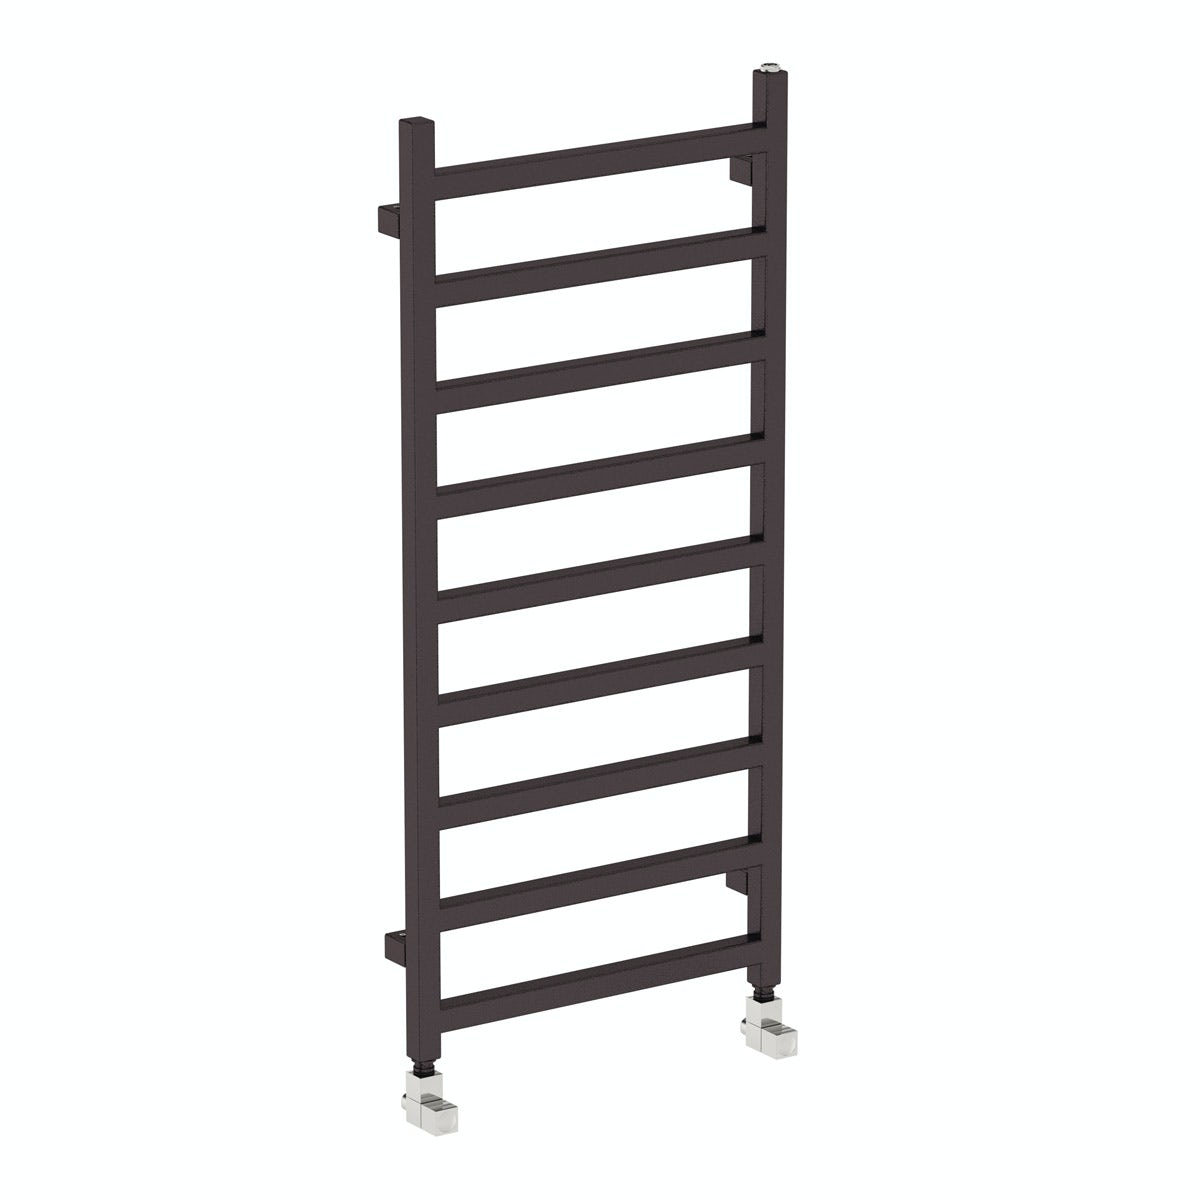 Terma Simple meteor black heated towel rail 1080 x 500